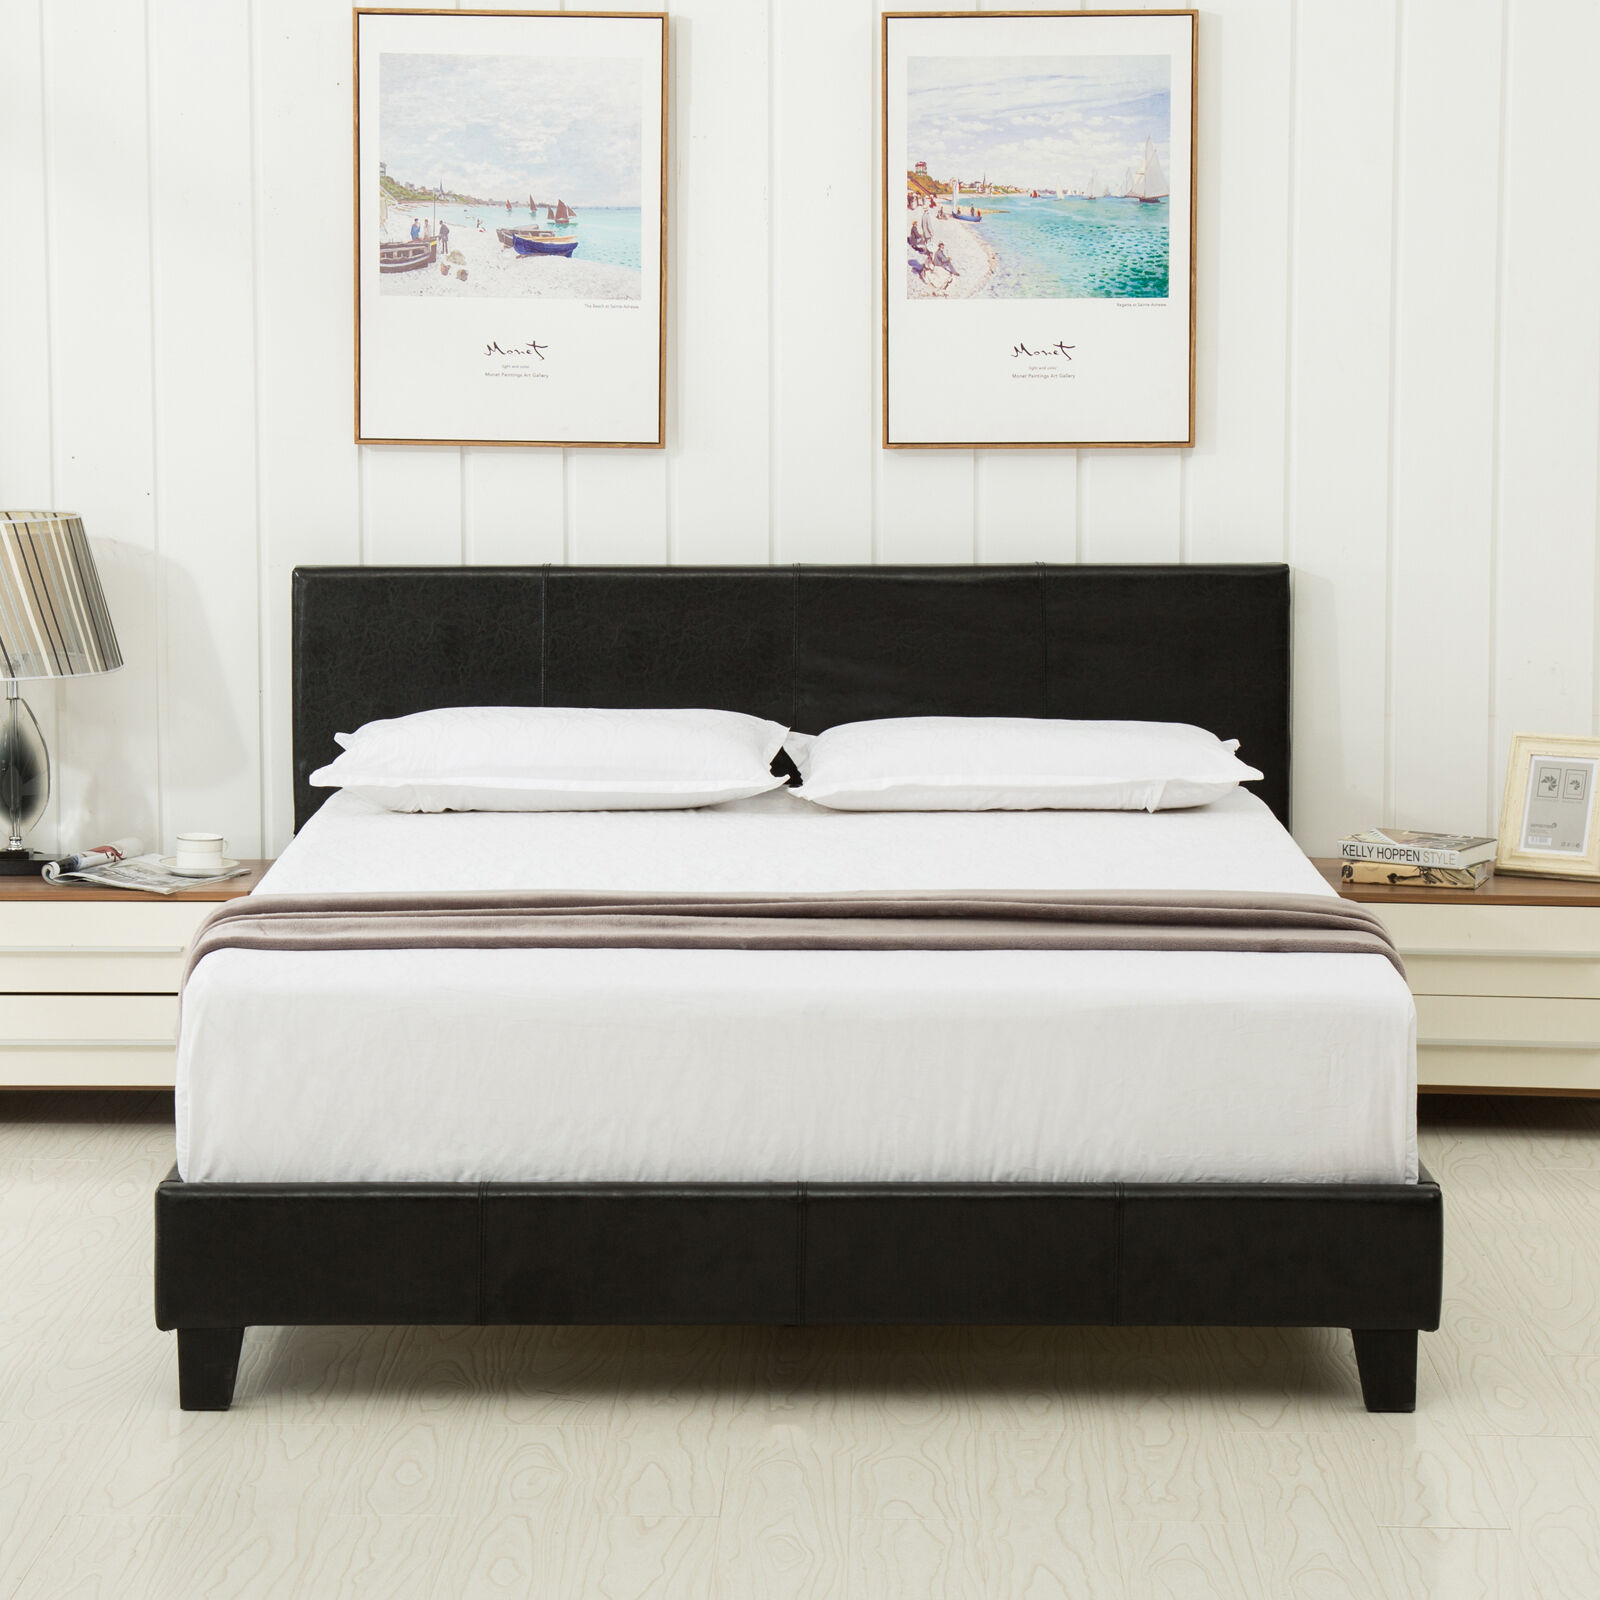 Queen Leather Platform Bed Frame Upholstered Headboard and Memory ...